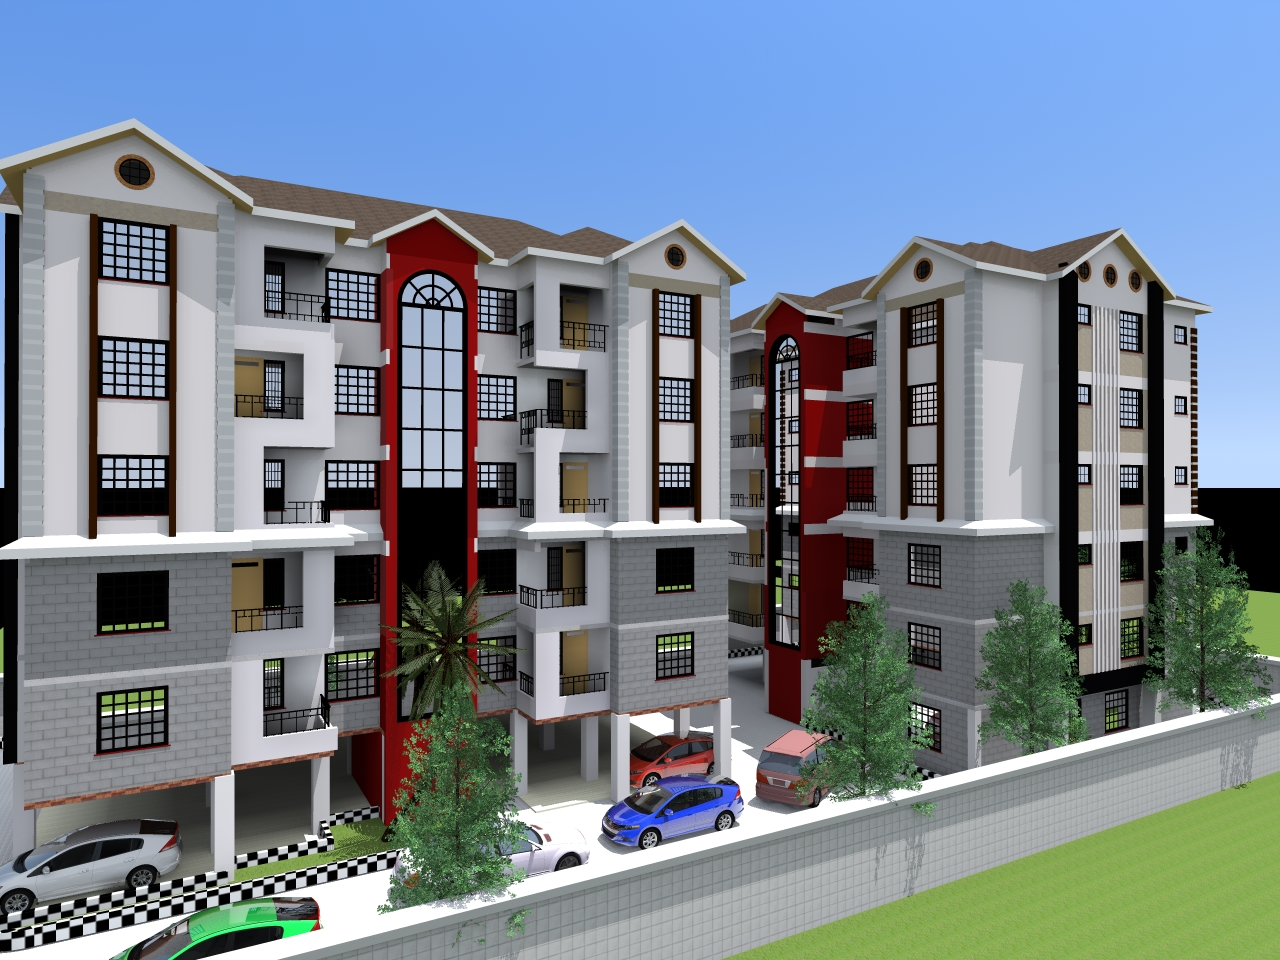 COZY HAVEN APARTMENTS-THINDIGUA, KIAMBU ROAD.